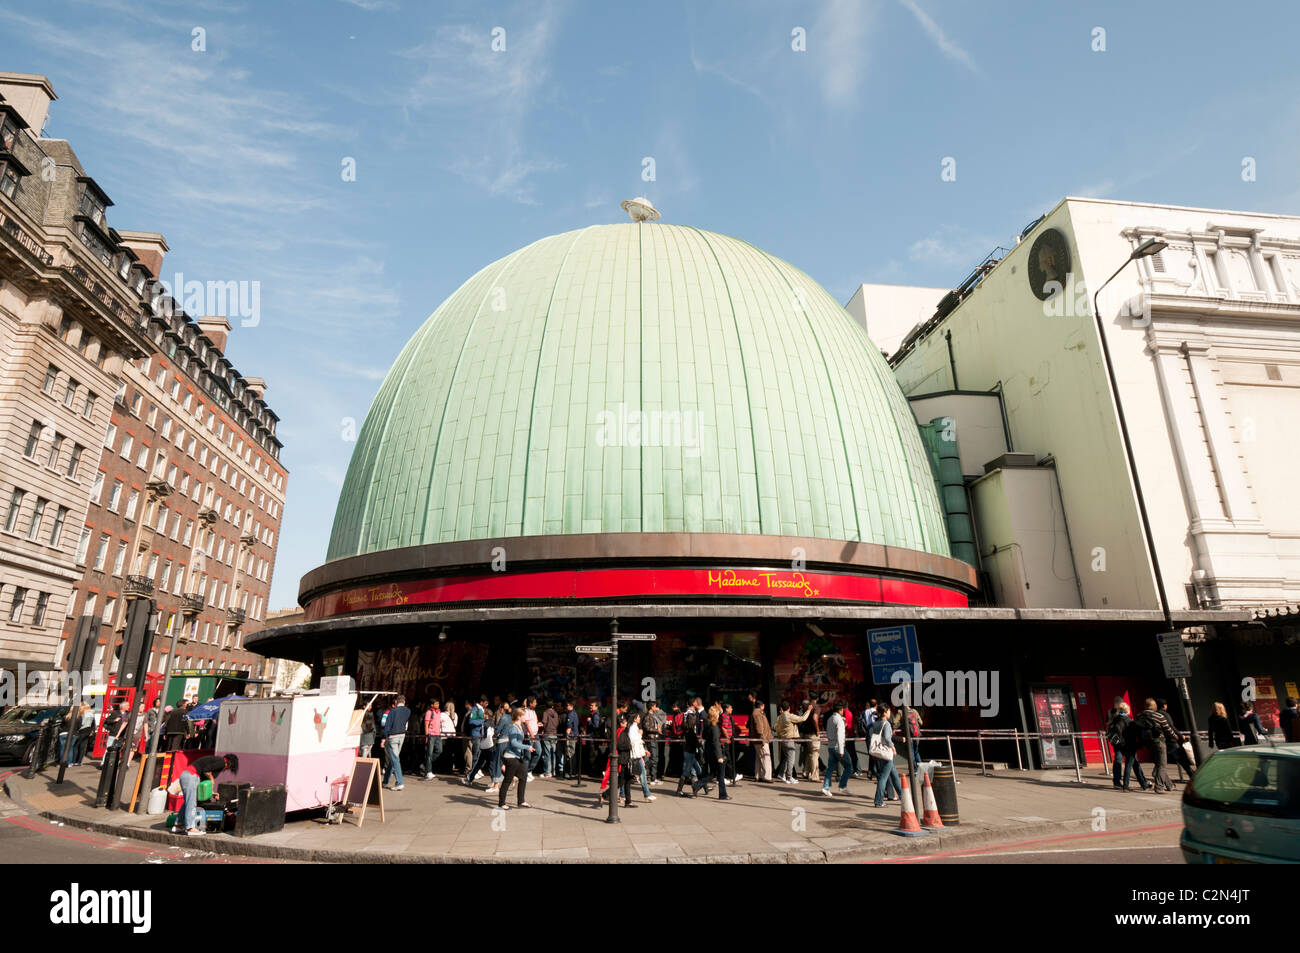 Madame Tussauds in London,England - Stock Image